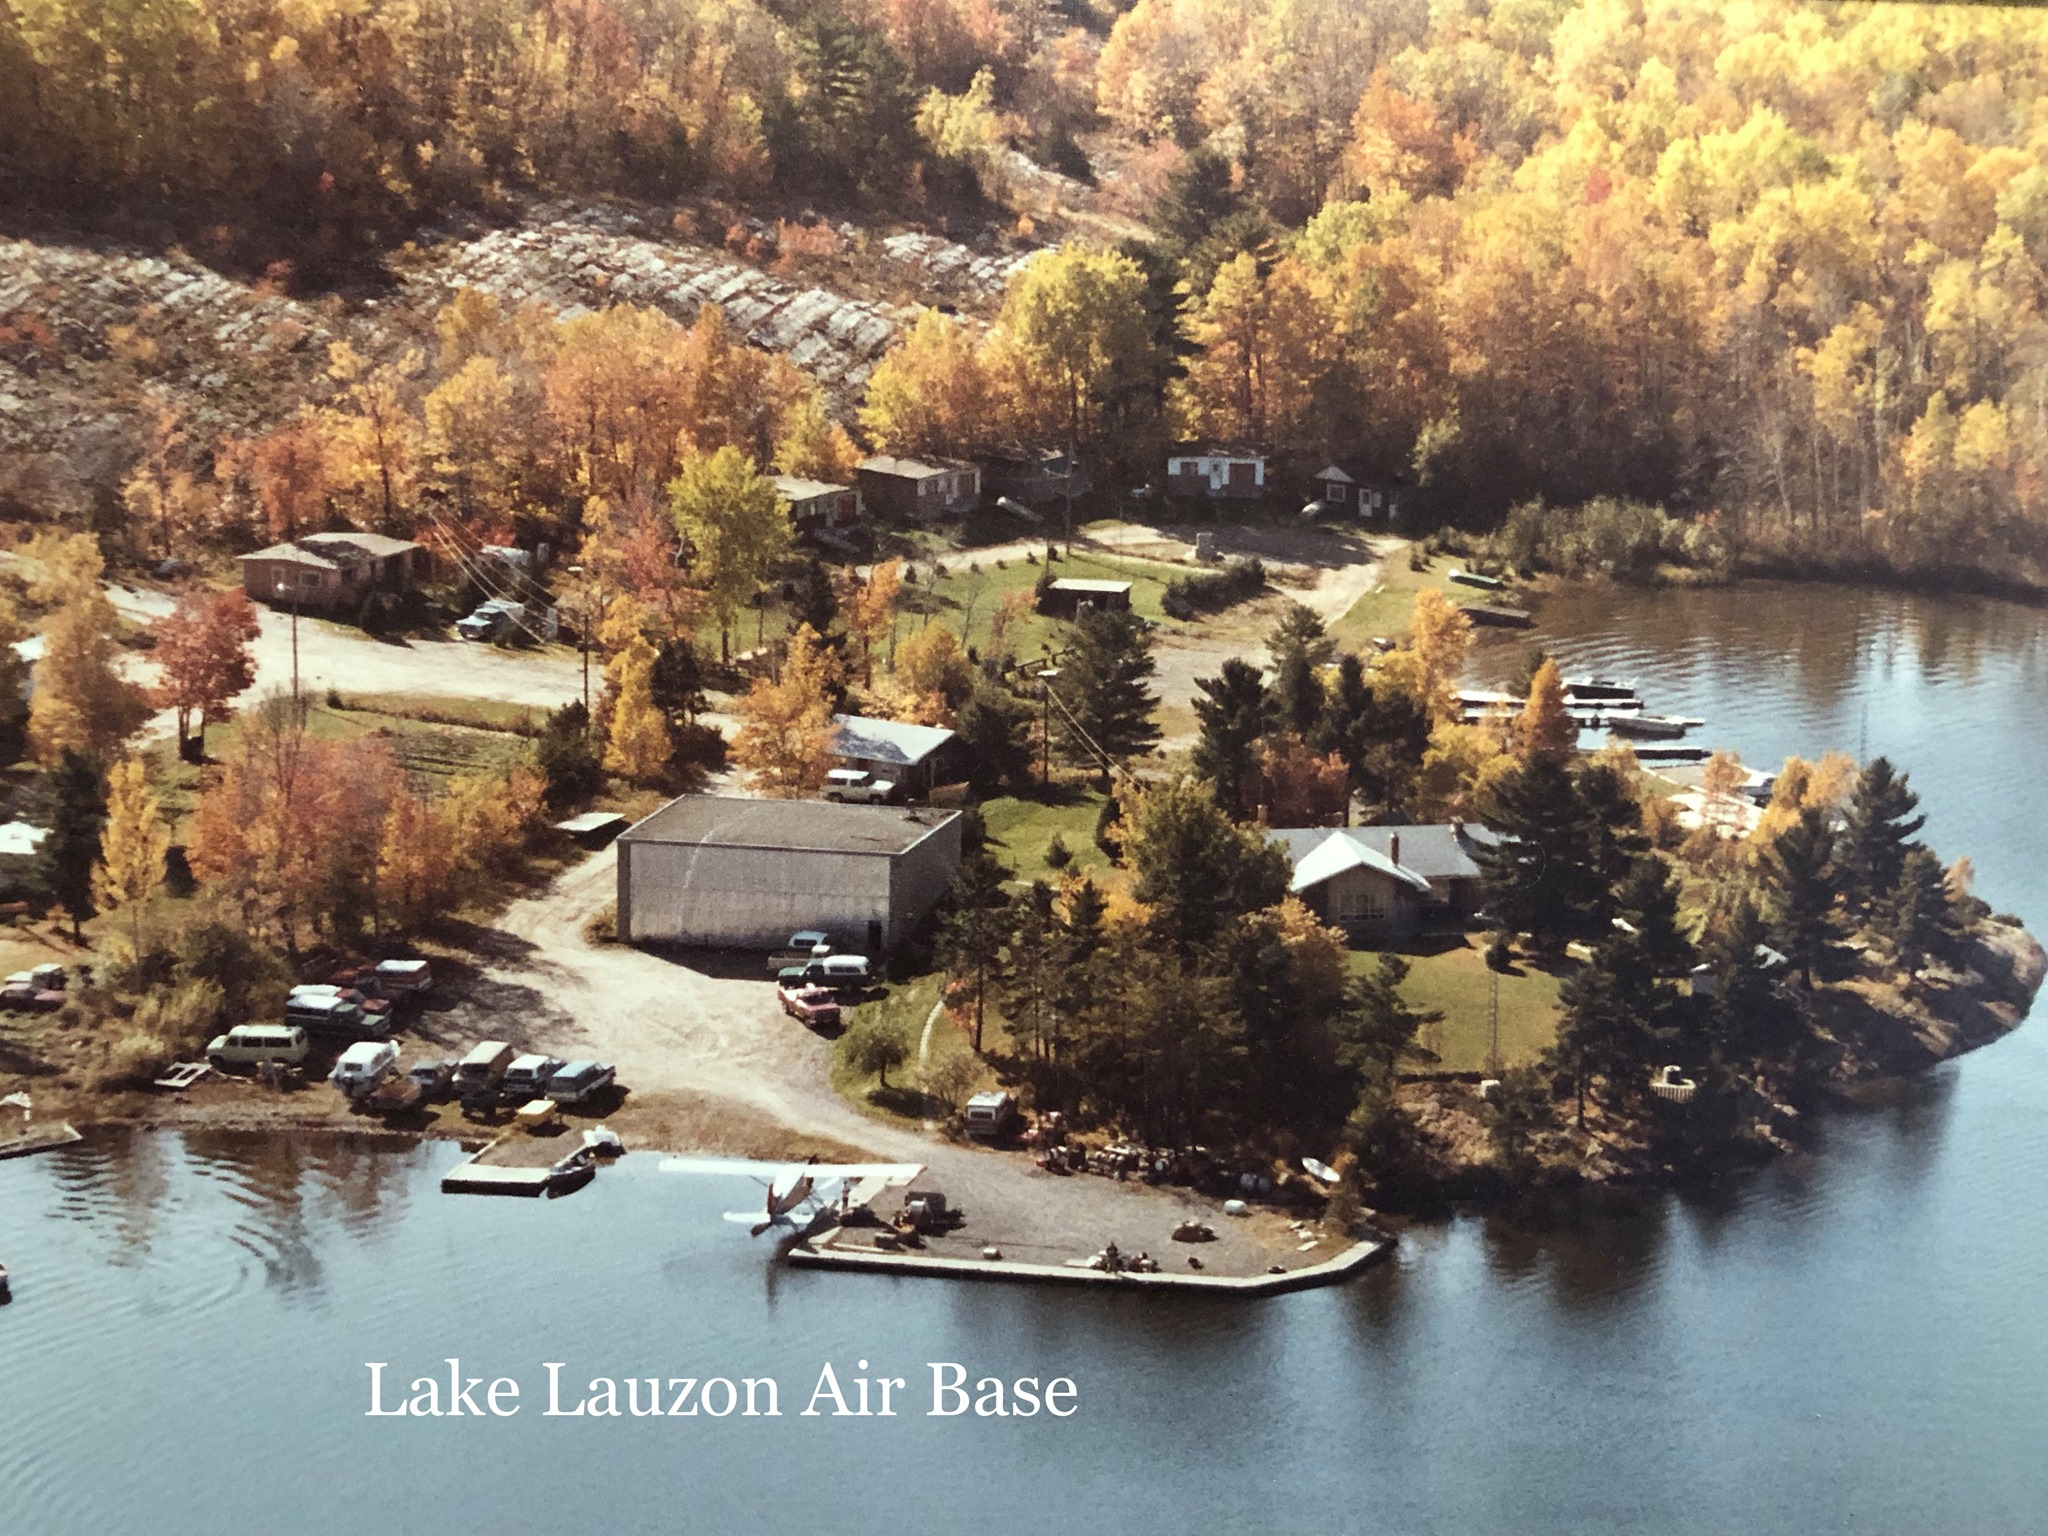 Lauzon Aviation